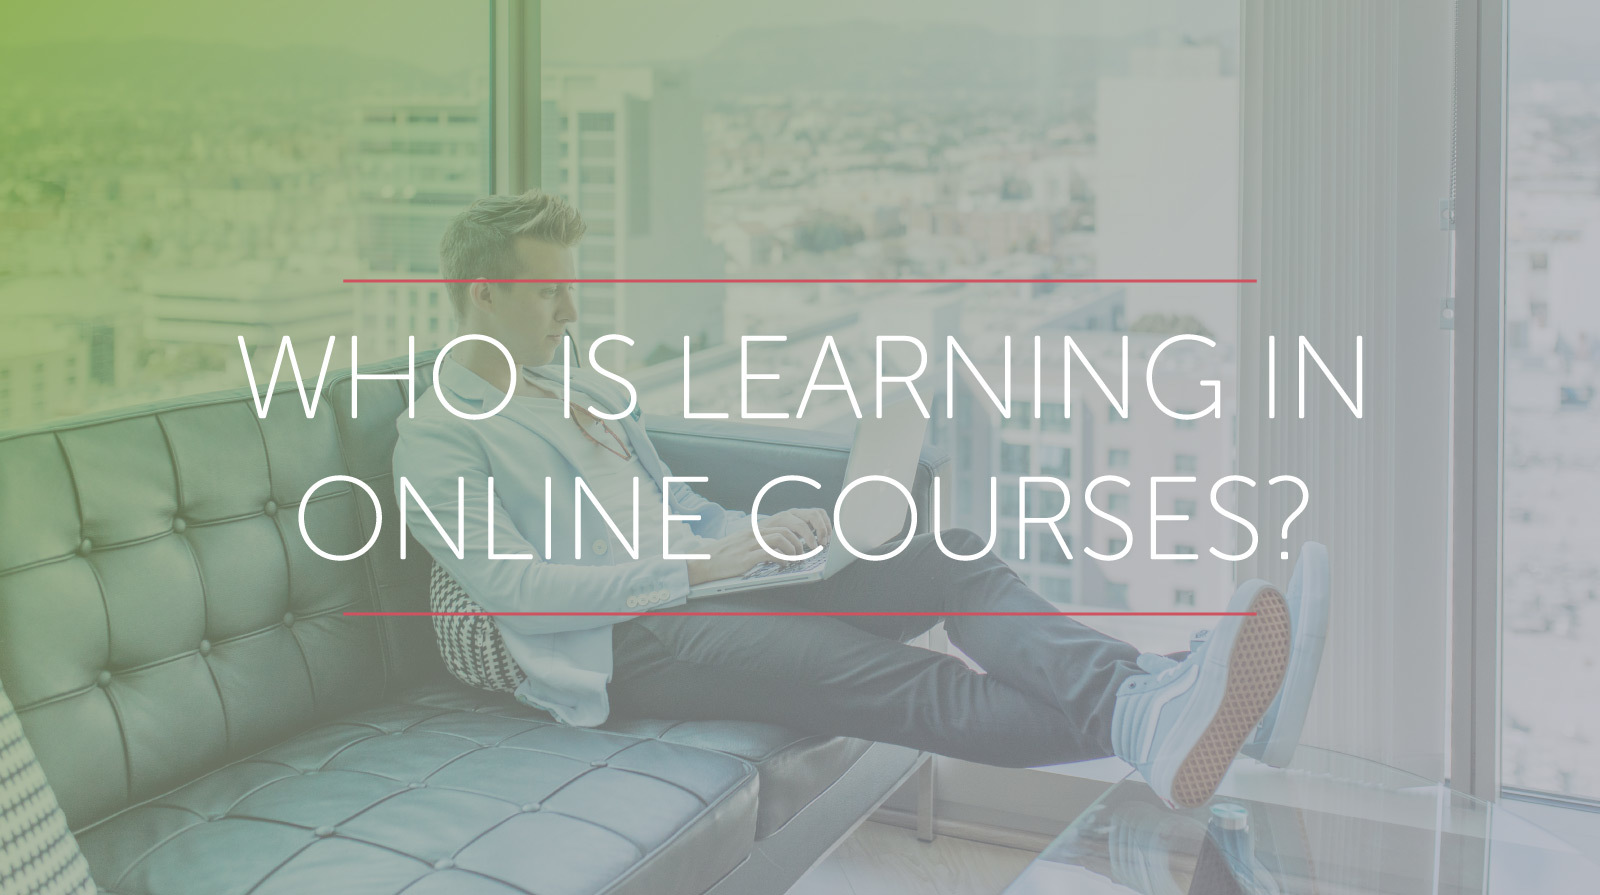 Who is Learning in Online Courses?